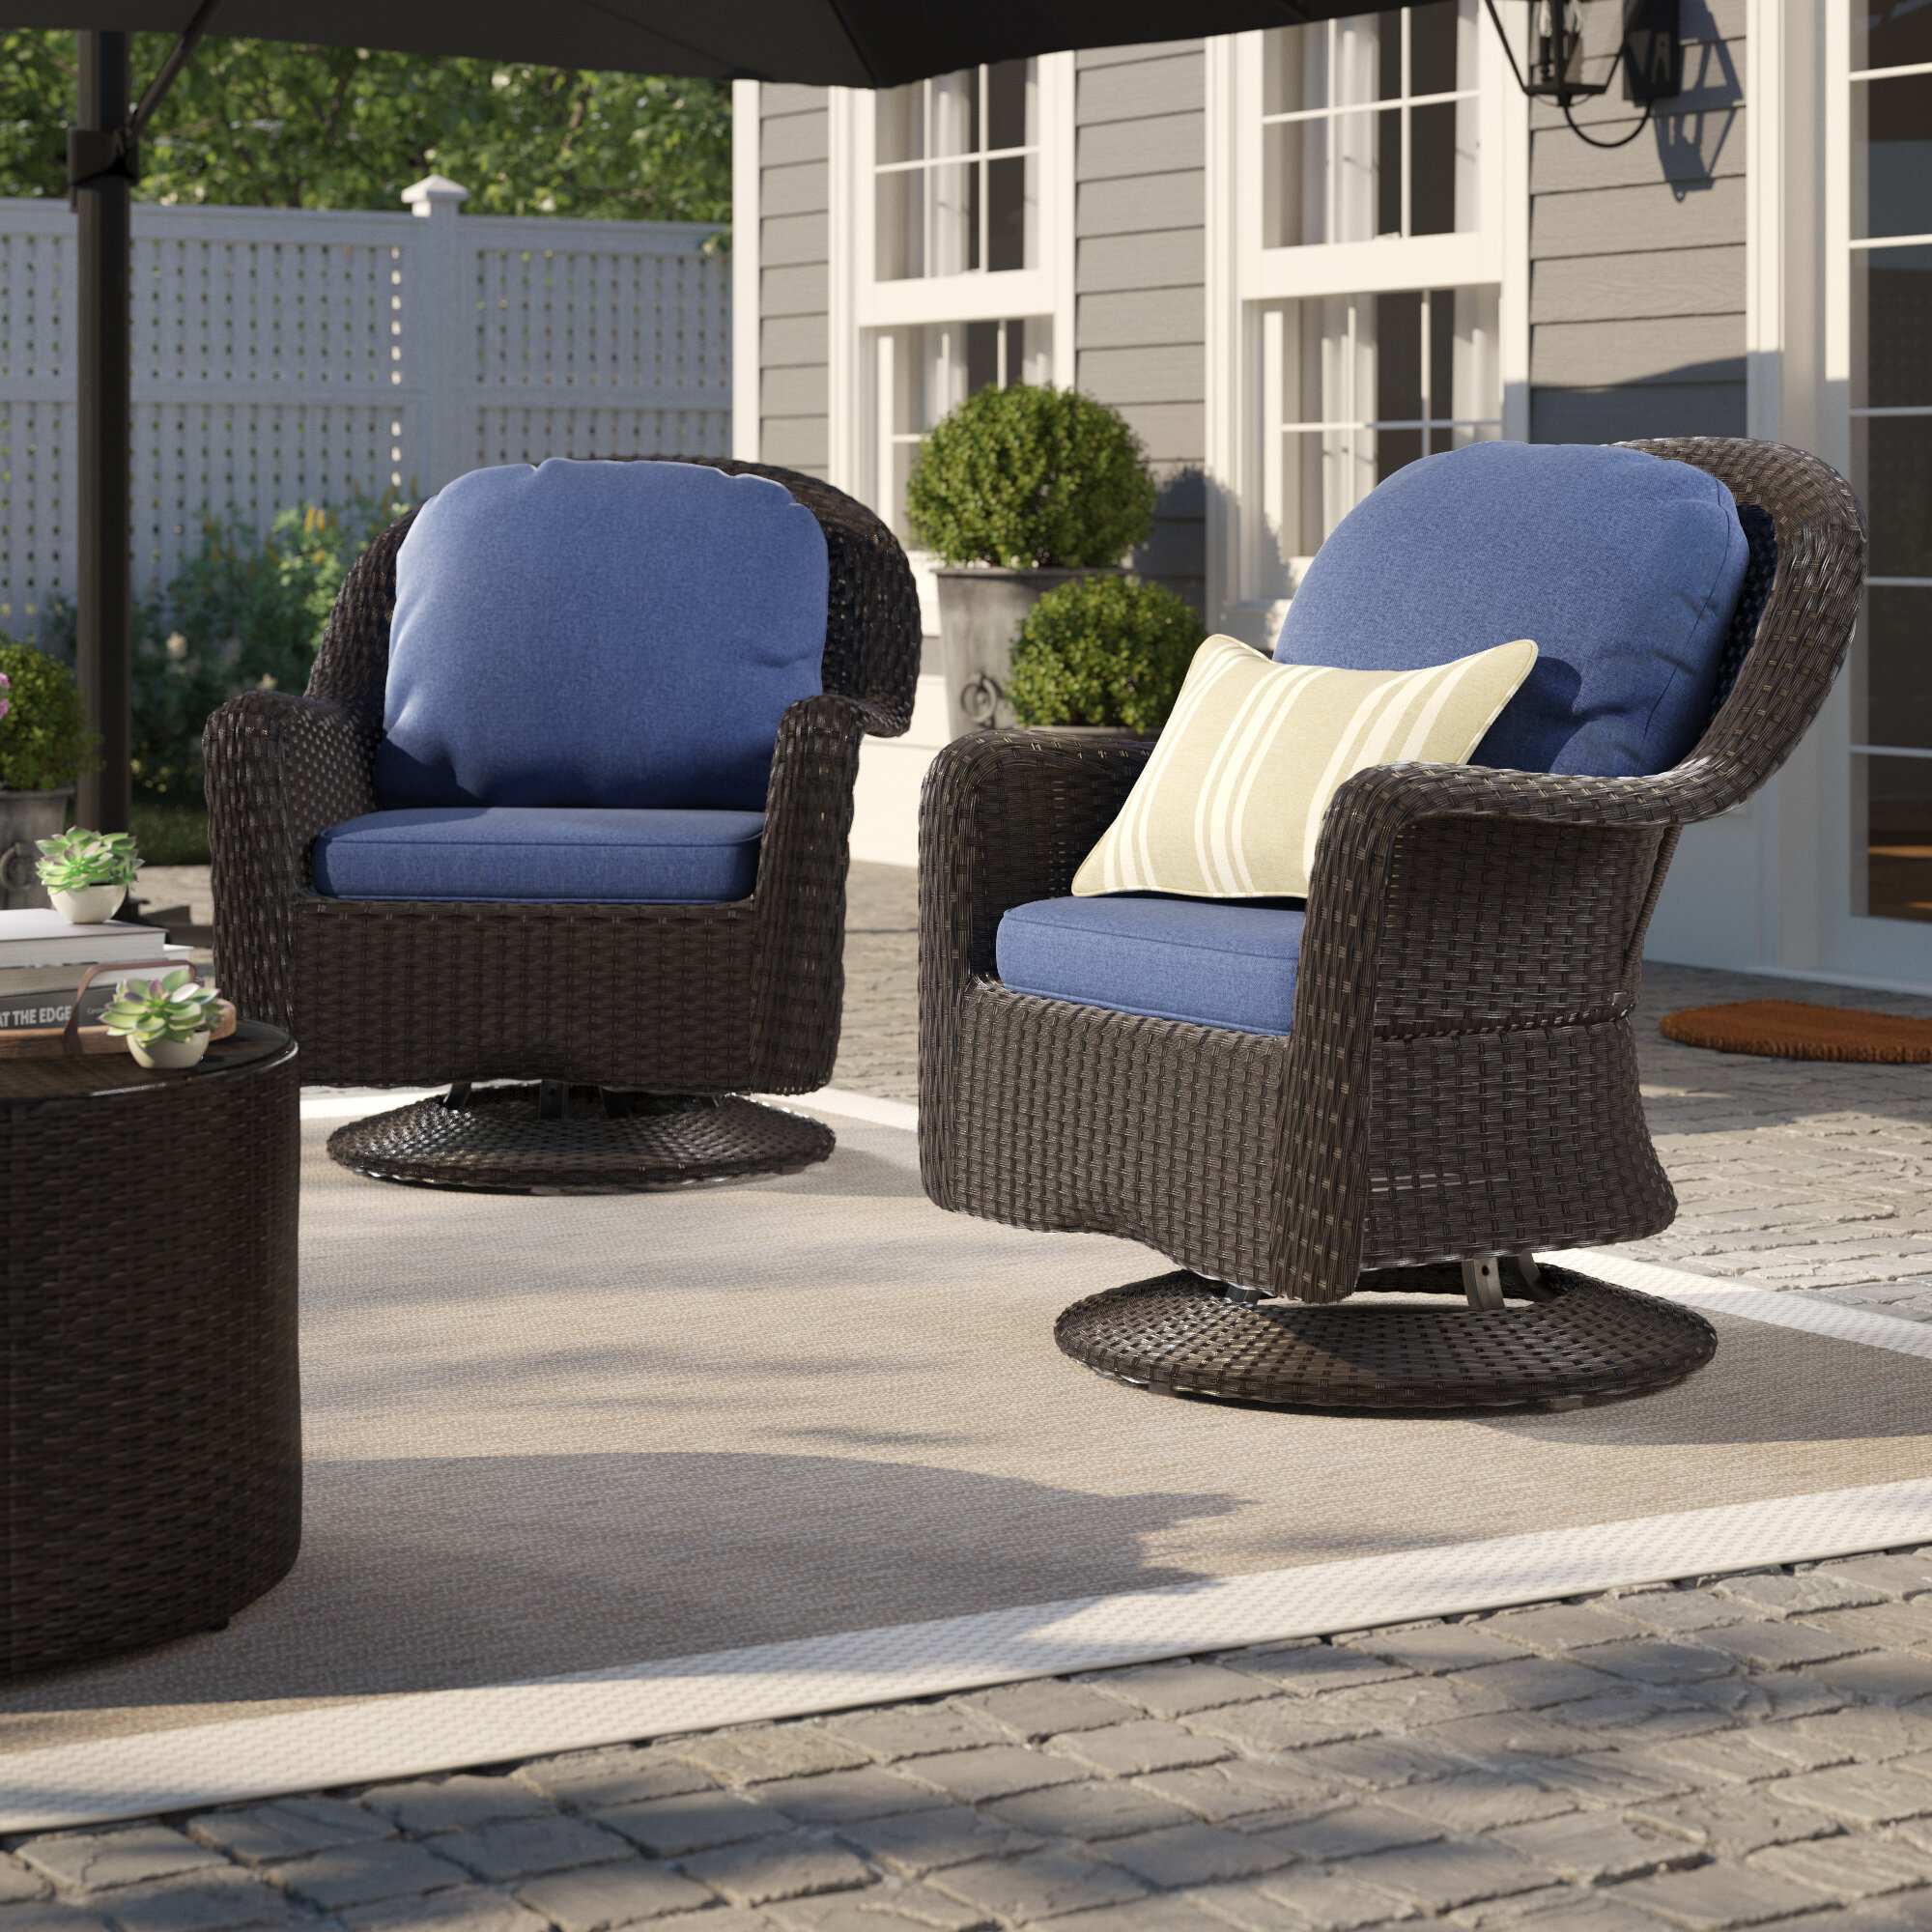 Admirable Dearing Modern Outdoor Wicker Swivel Club Patio Chair With Cushions Home Interior And Landscaping Ologienasavecom